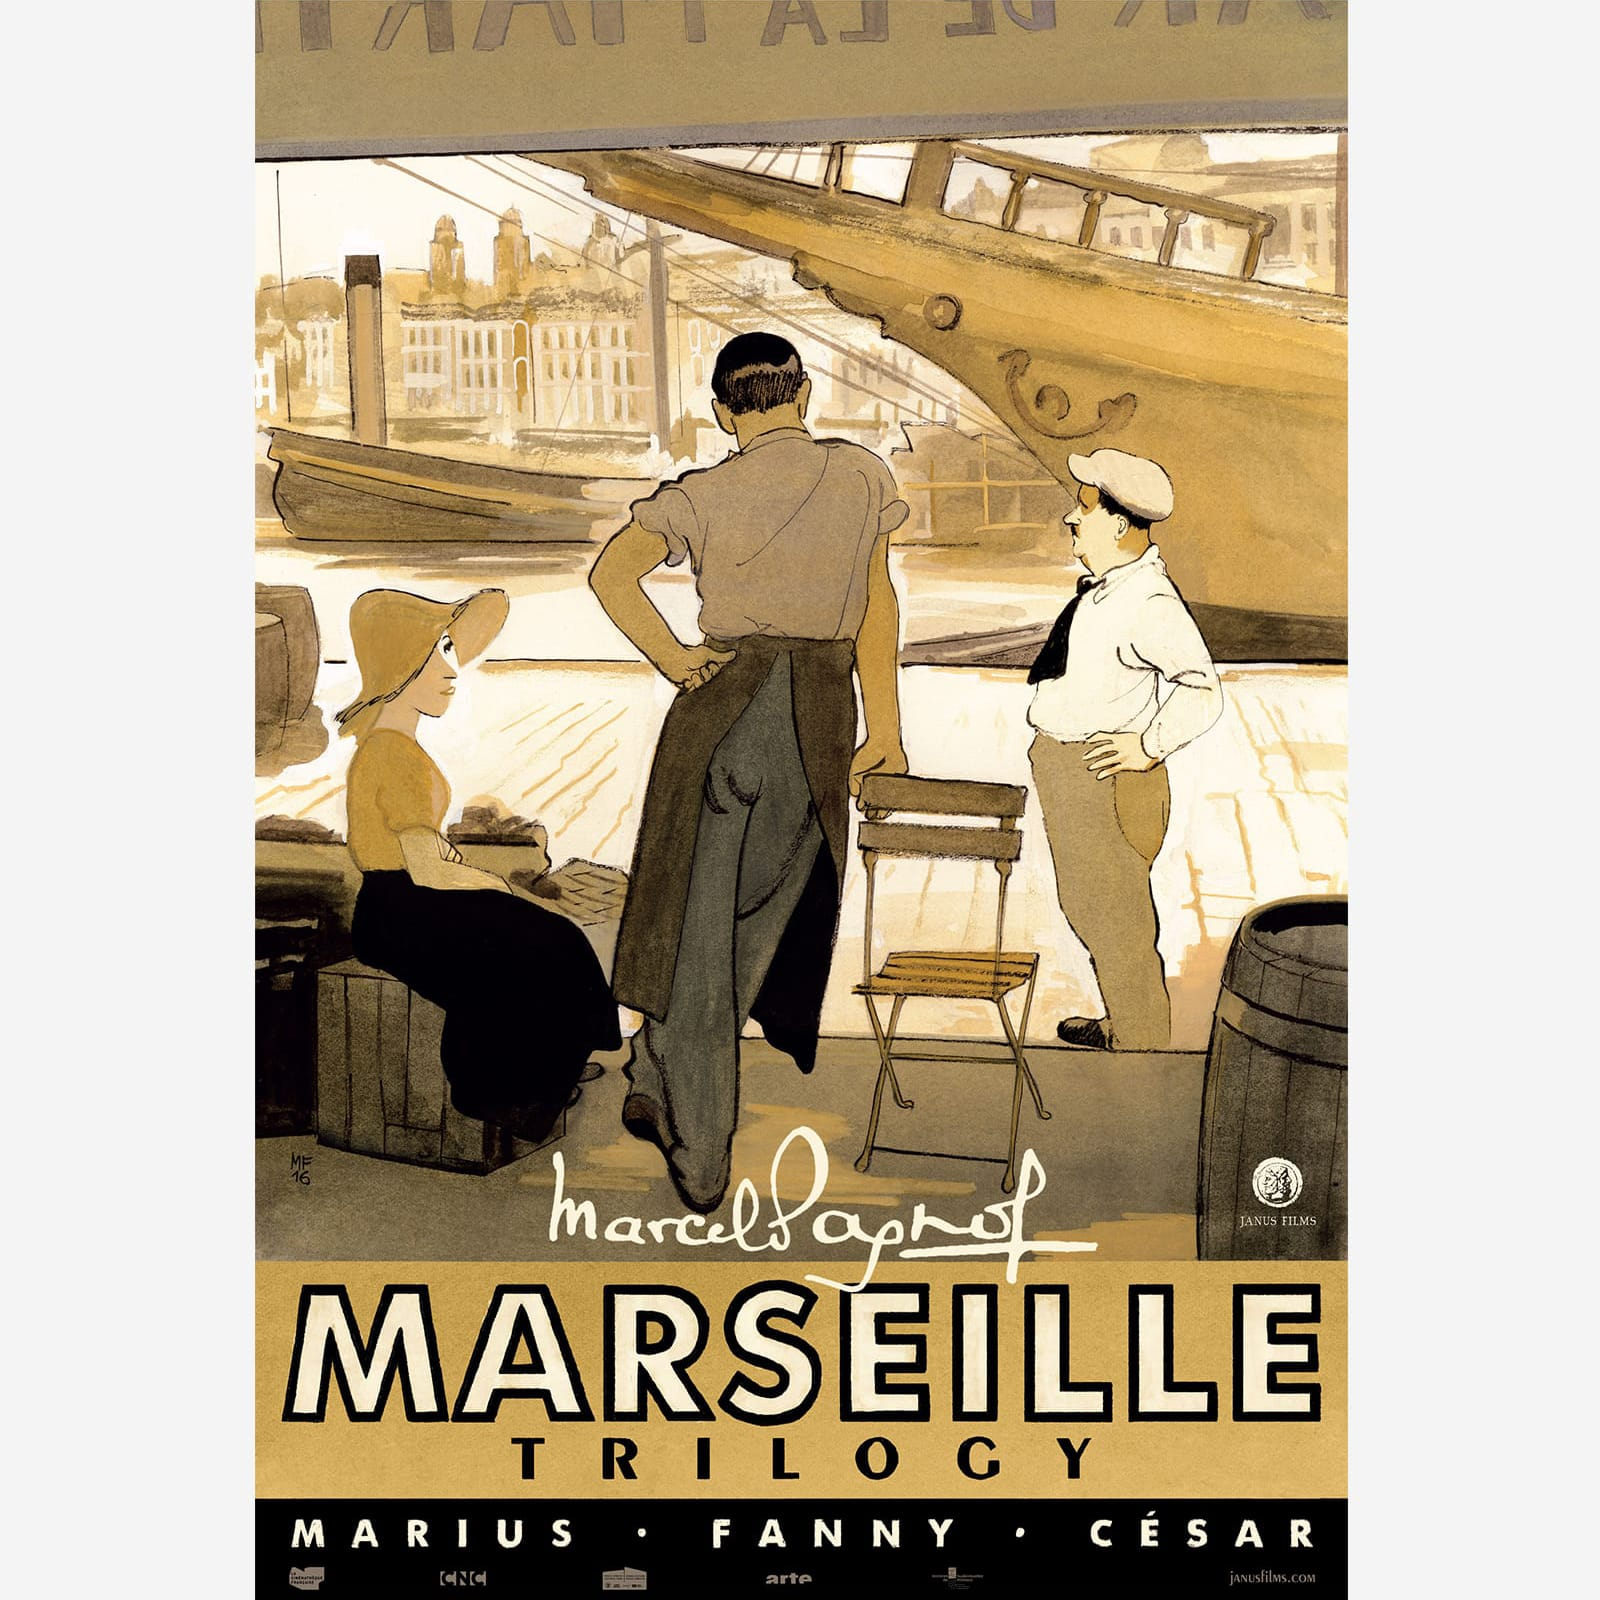 The Marseille Trilogy Poster